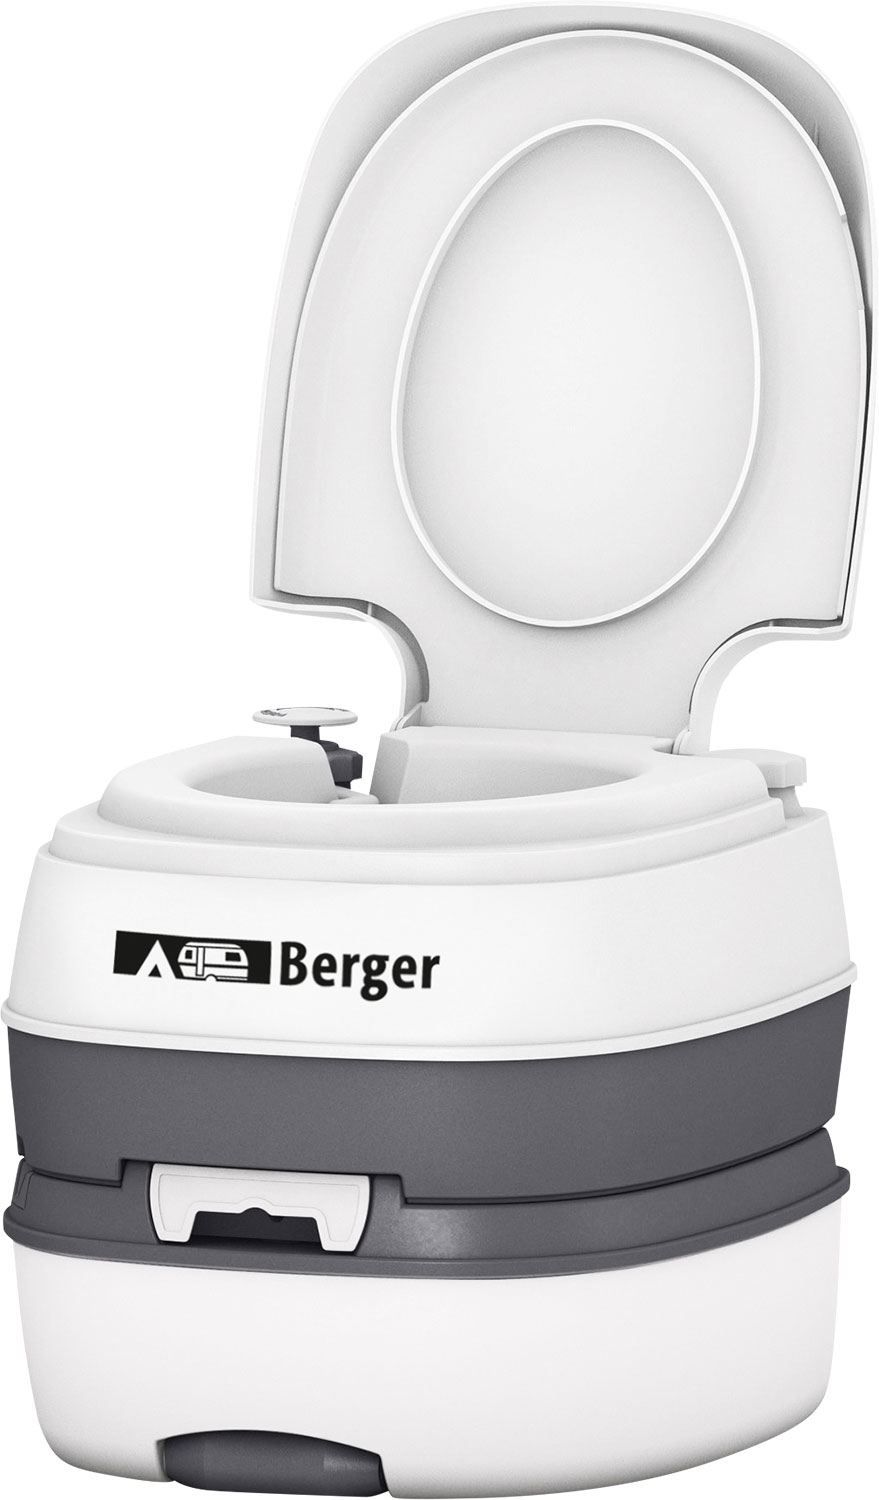 Berger Campingtoilette Mobil WC Deluxe | 14.03.19